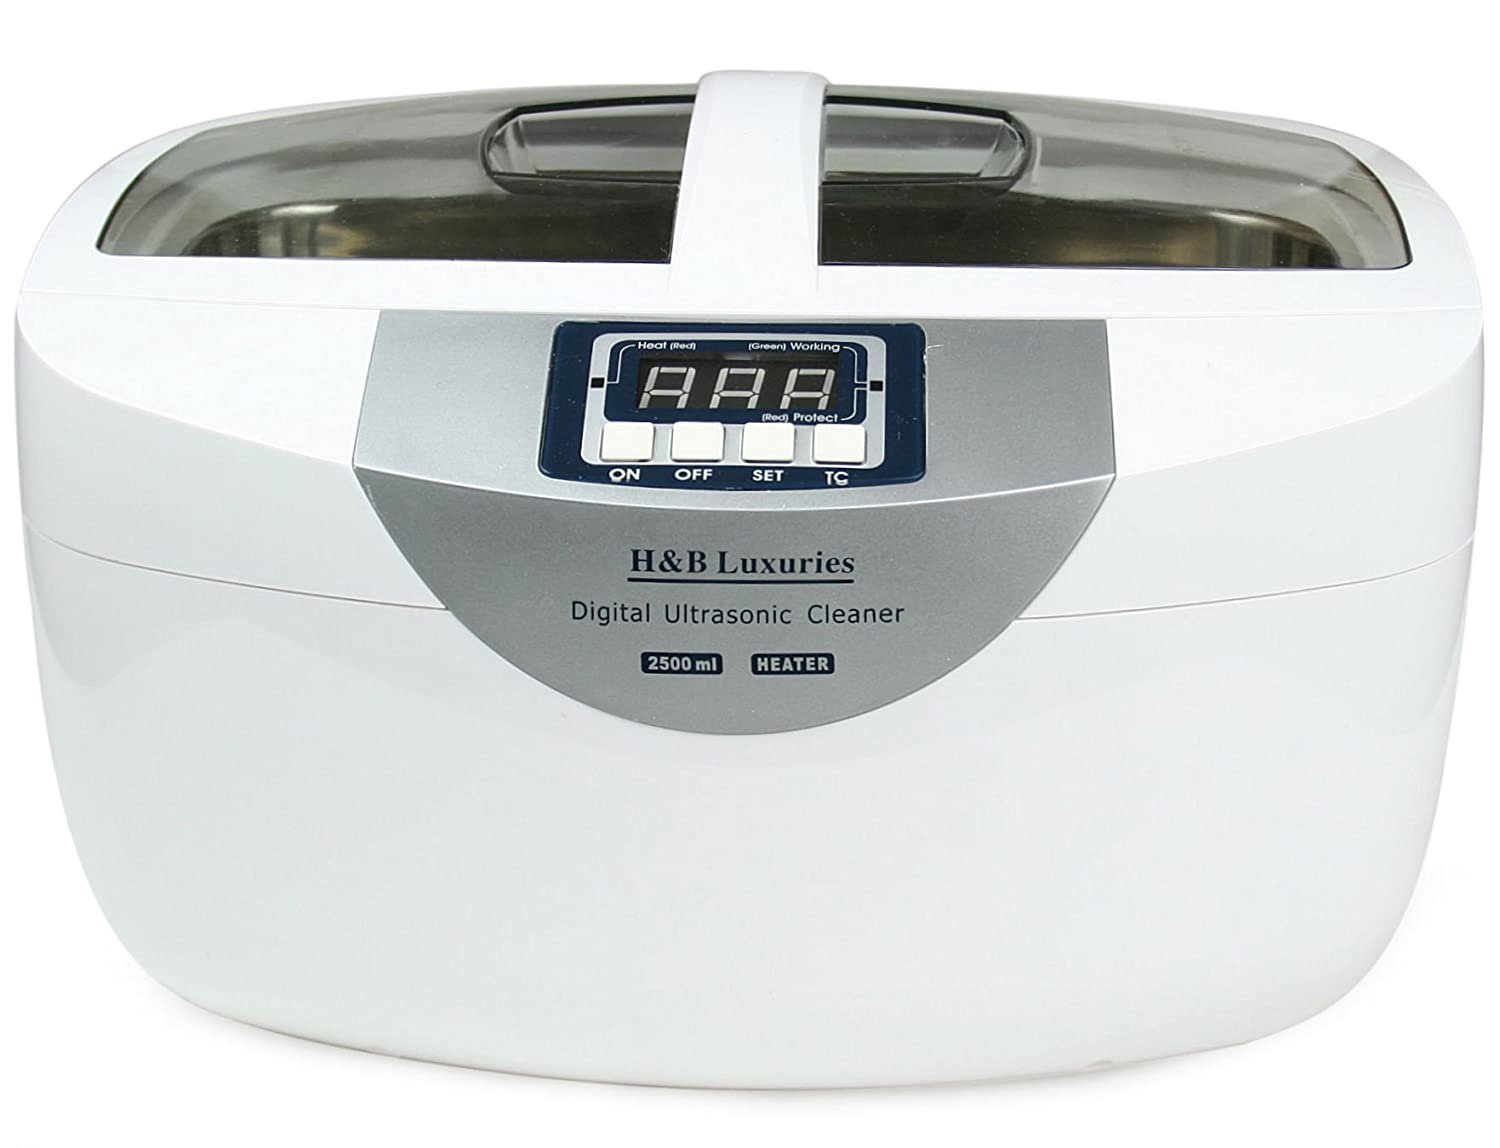 H&B Luxuries Ultrasonic Cleaner